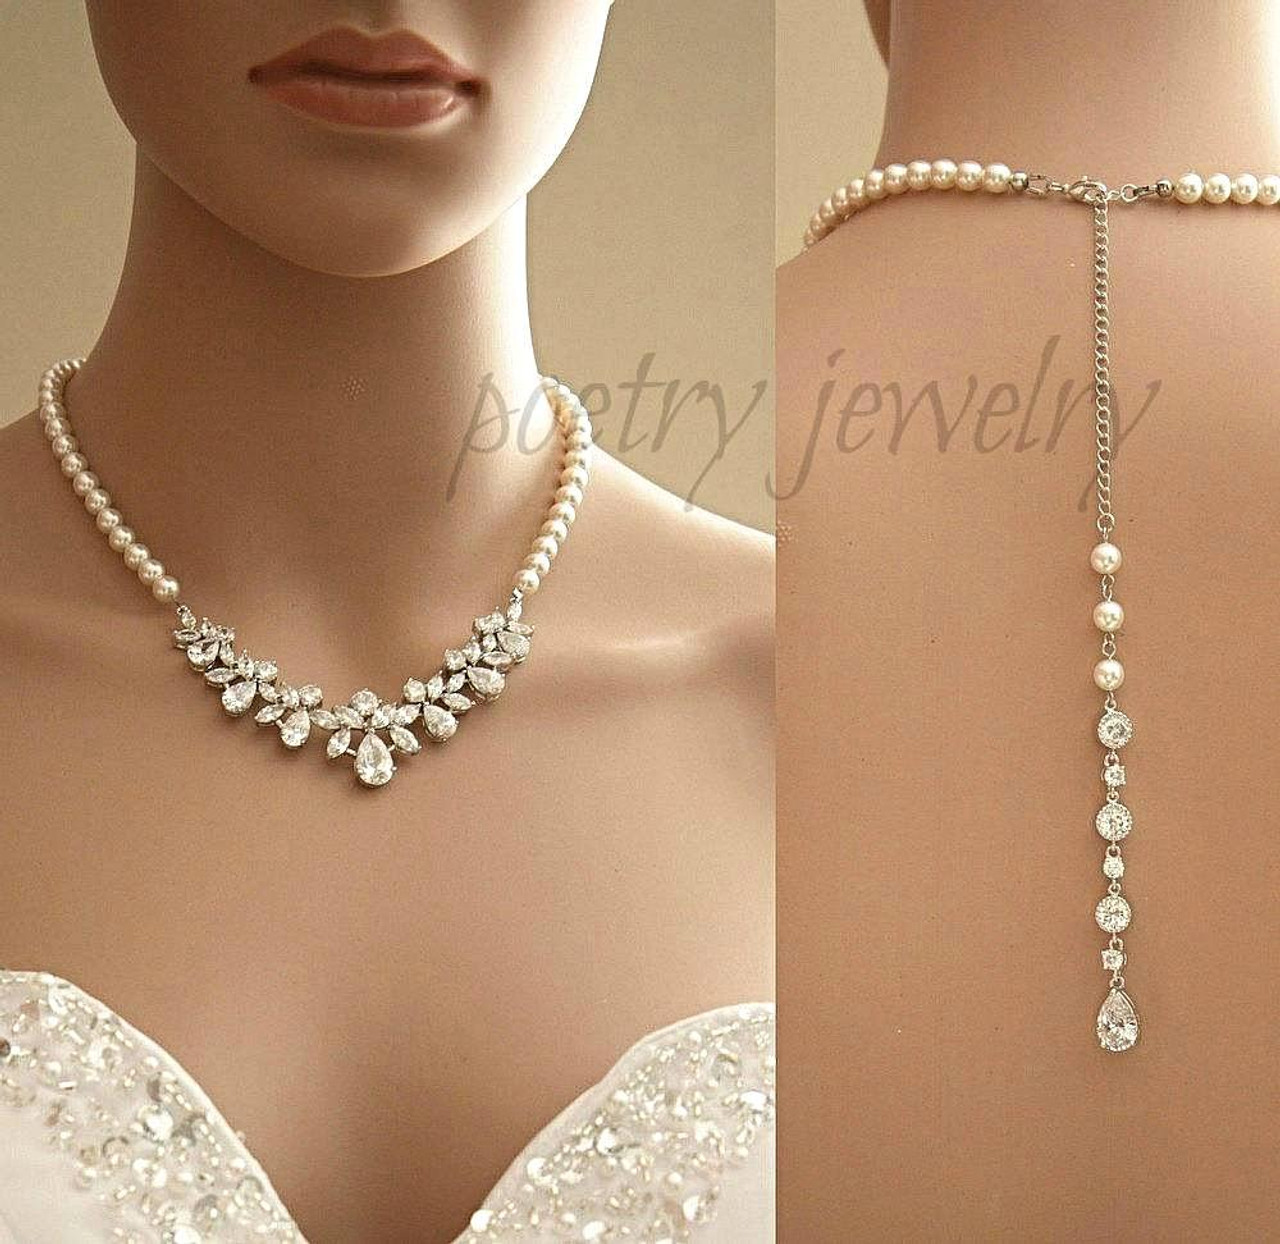 2bf75526c6fe2 Back Bridal Necklace, Crystal and Pearl Wedding Necklace, Wedding Back  Necklace, Necklace with Backdrop, Back Bridal Jewelry, Nicole